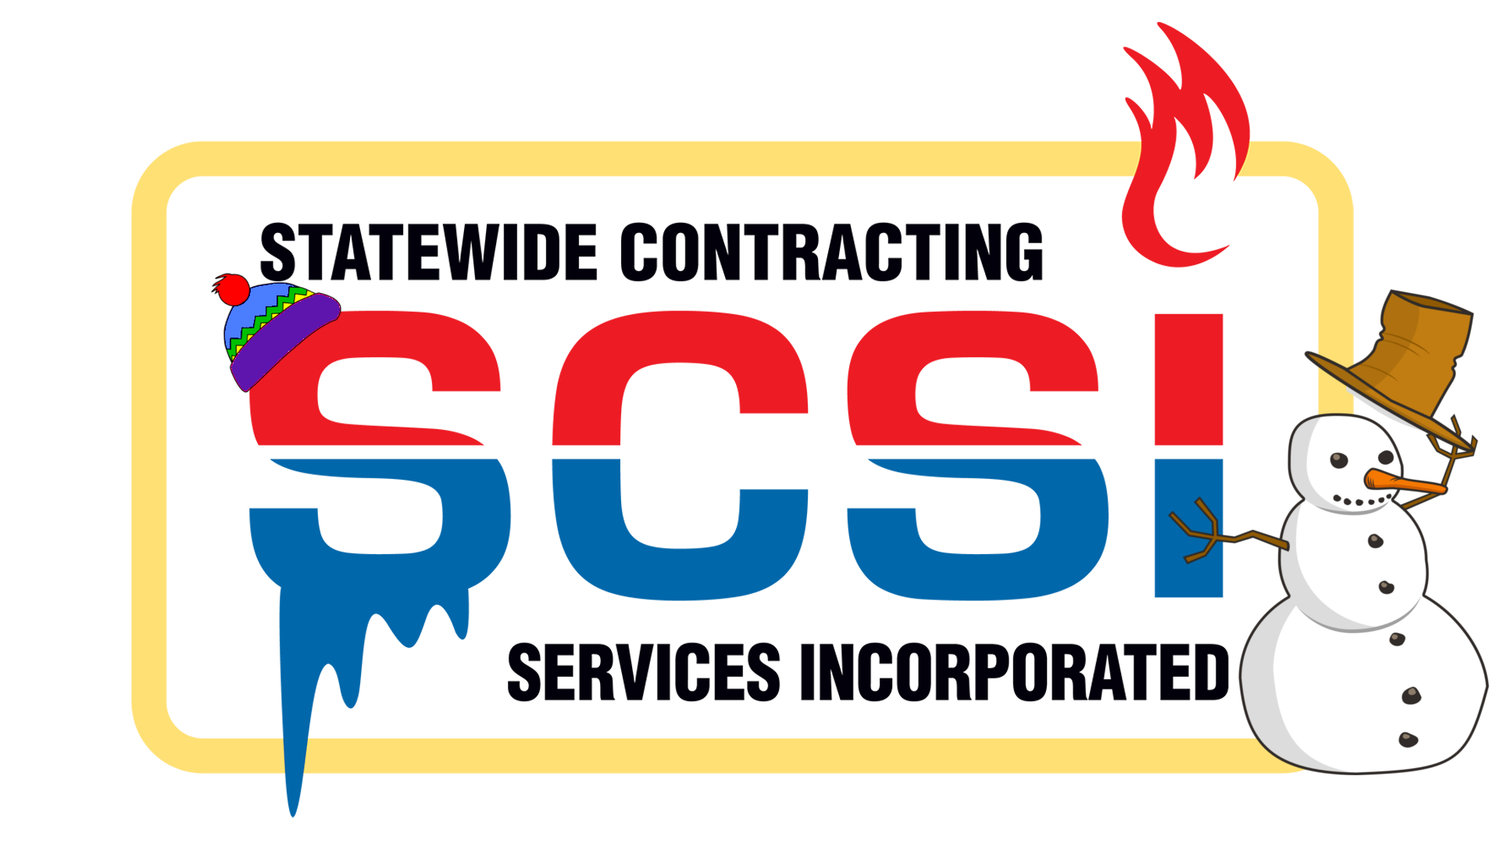 Statewide Contracting Services Inc.